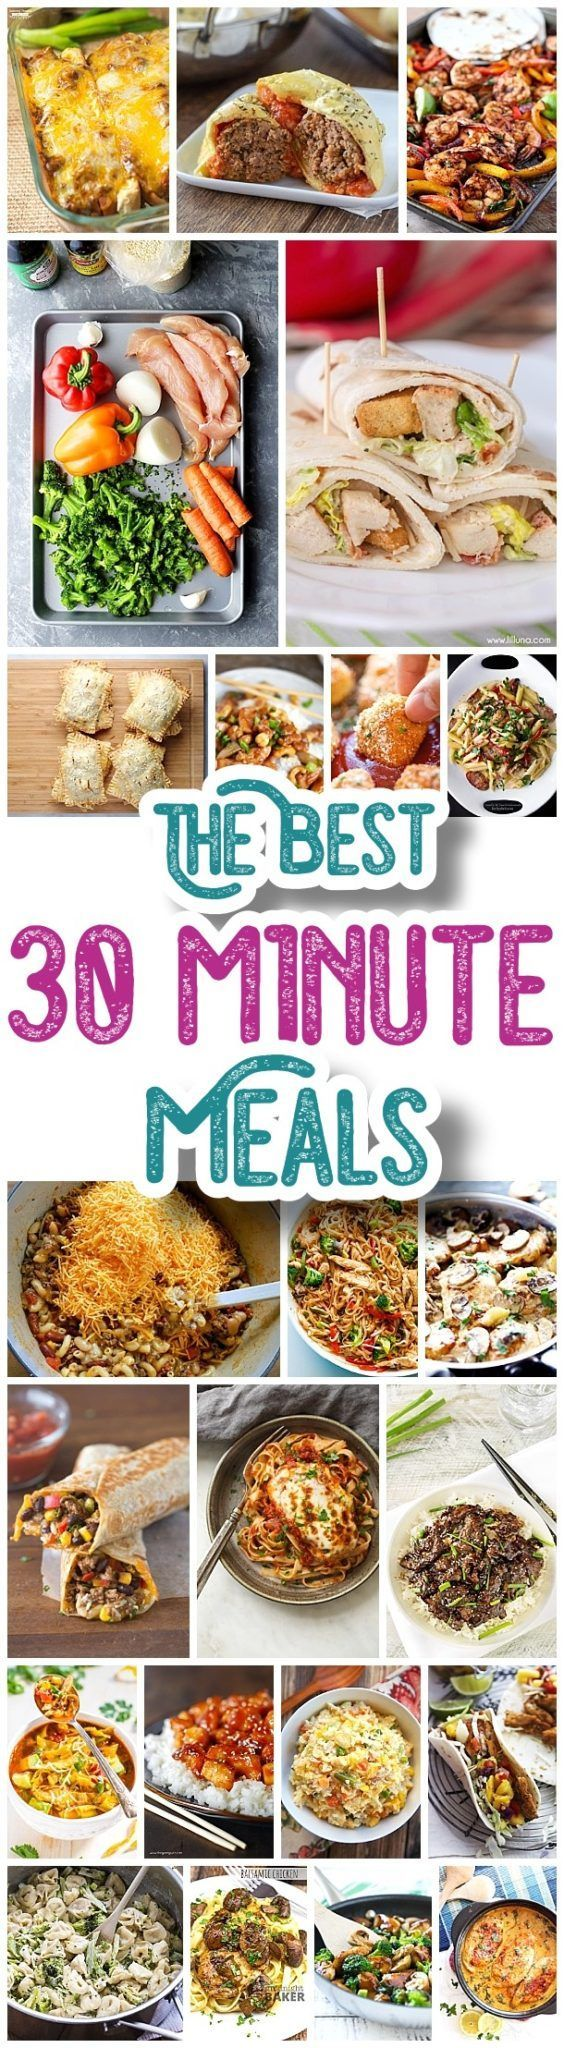 The BEST 30 Minute Meals Recipes - Easy, Quick and Delicious Family Friendly Lunch and Dinner Menu Ideas - Dreaming in DIY #30minutemeals #30minutedinners #thirtyminutedinners #30minuterecipes #fastrecipes #easyrecipes #quickrecipes #mealprep #simplefamilymeals #simplefamilyrecipes #simplerecipes